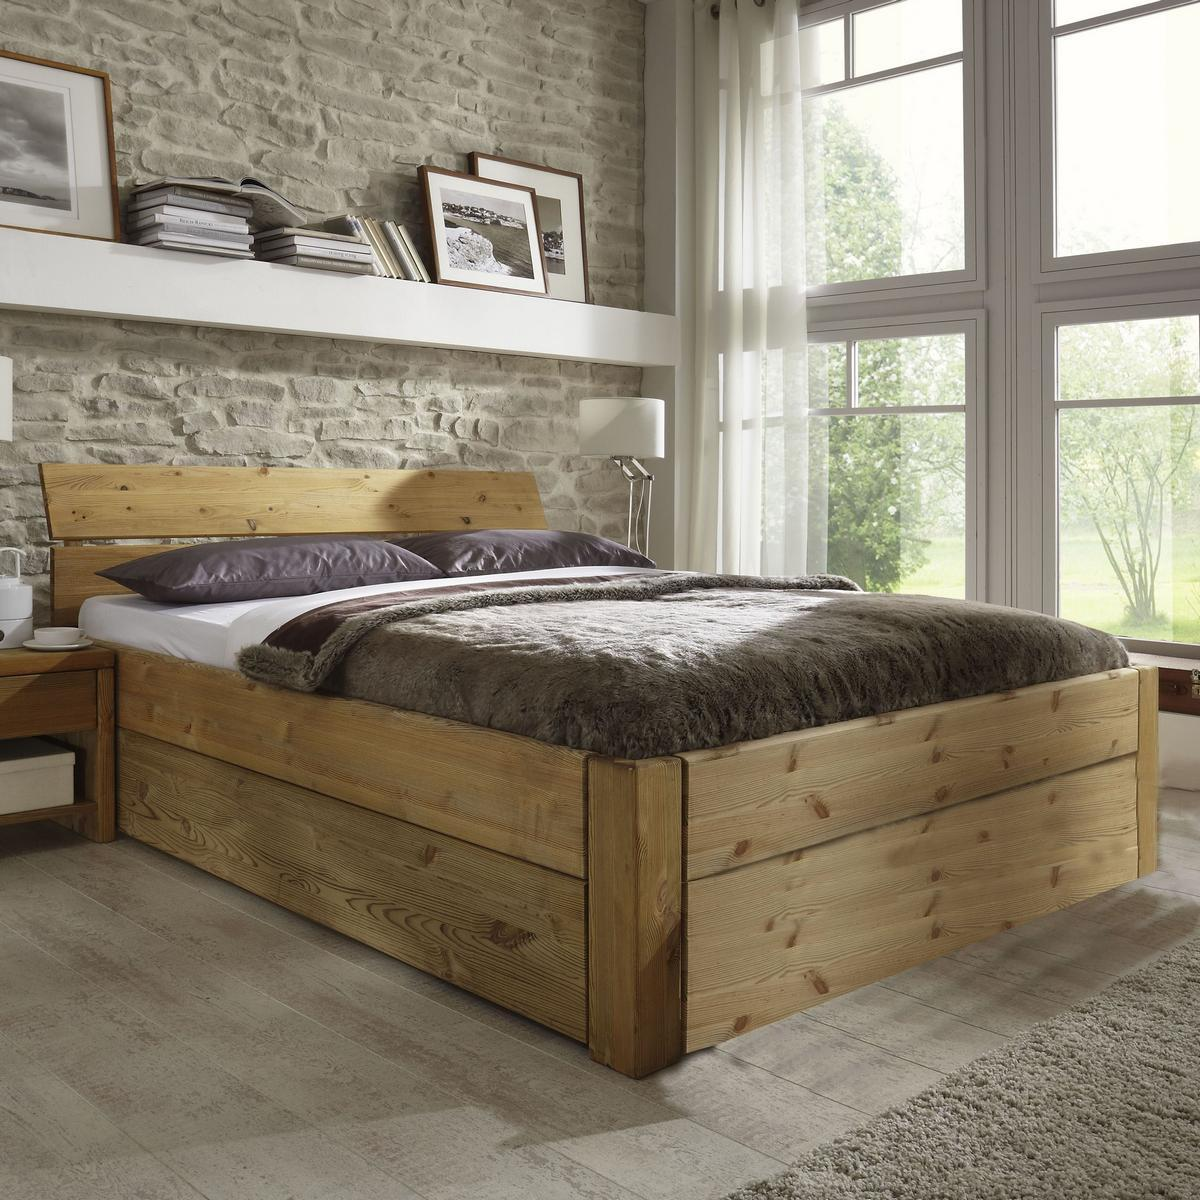 massivholz schubkastenbett 100x200 easy sleep kiefer massiv gelaugt ge lt 9210 93 52 5. Black Bedroom Furniture Sets. Home Design Ideas